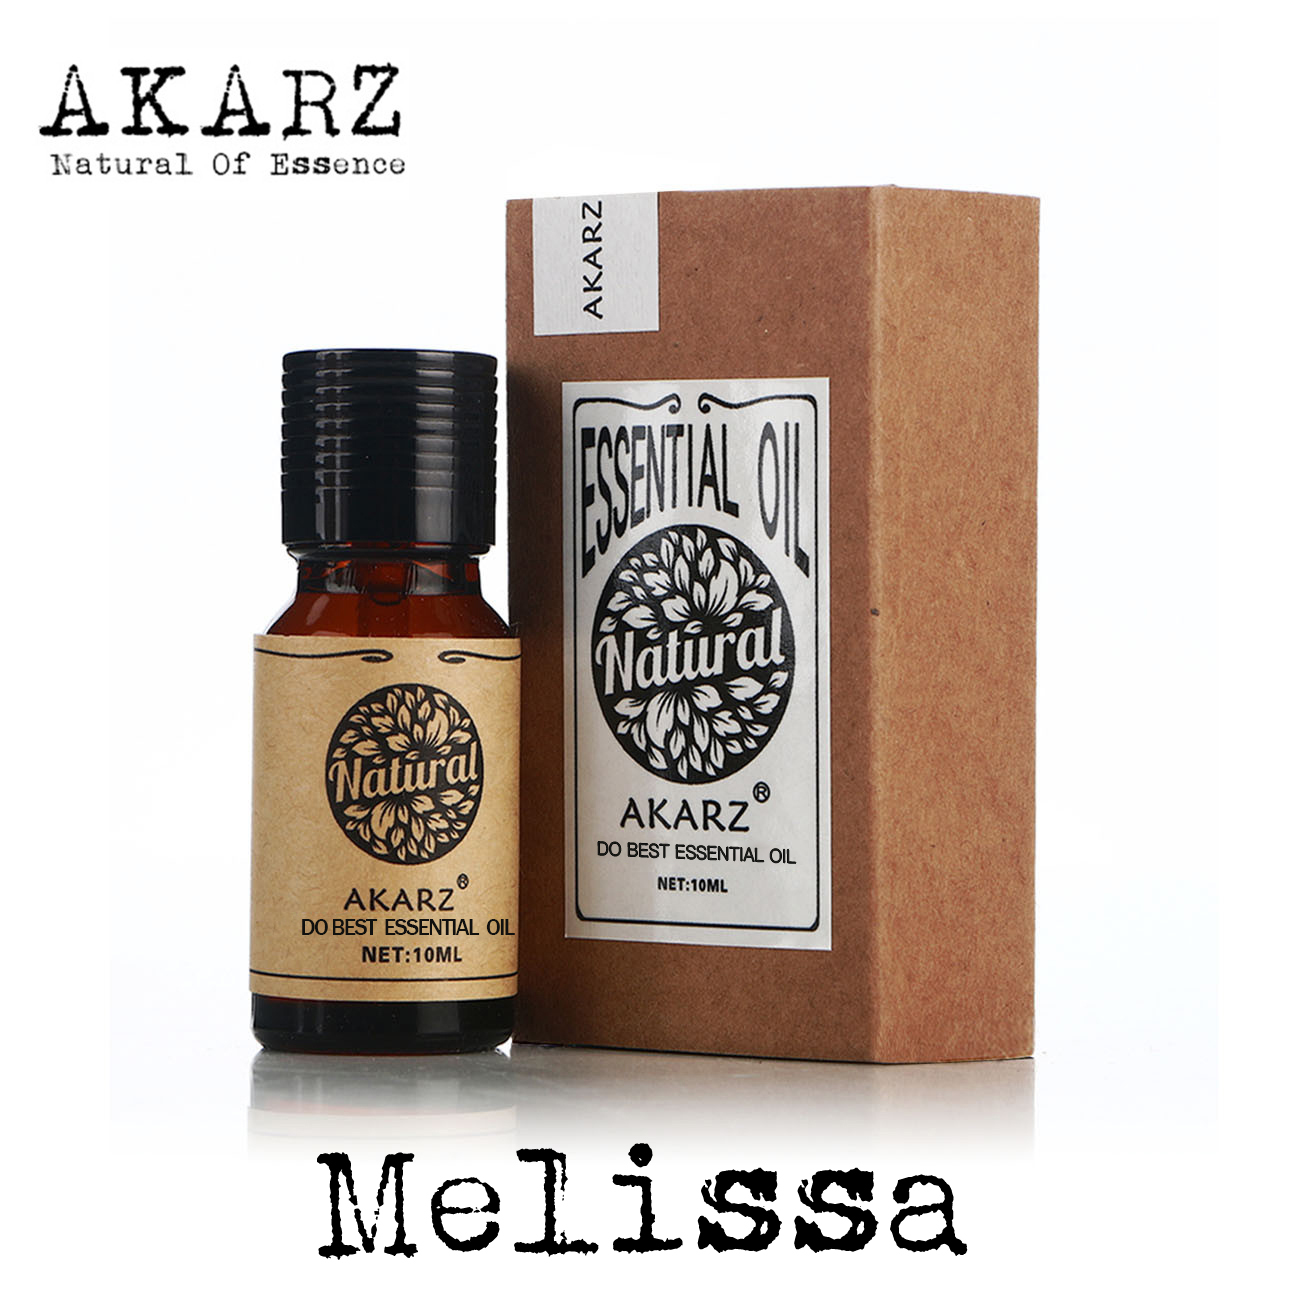 Melissa essential oil AKARZ Top Brand body face skin care spa message fragrance lamp Aromatherapy Melissa oil image